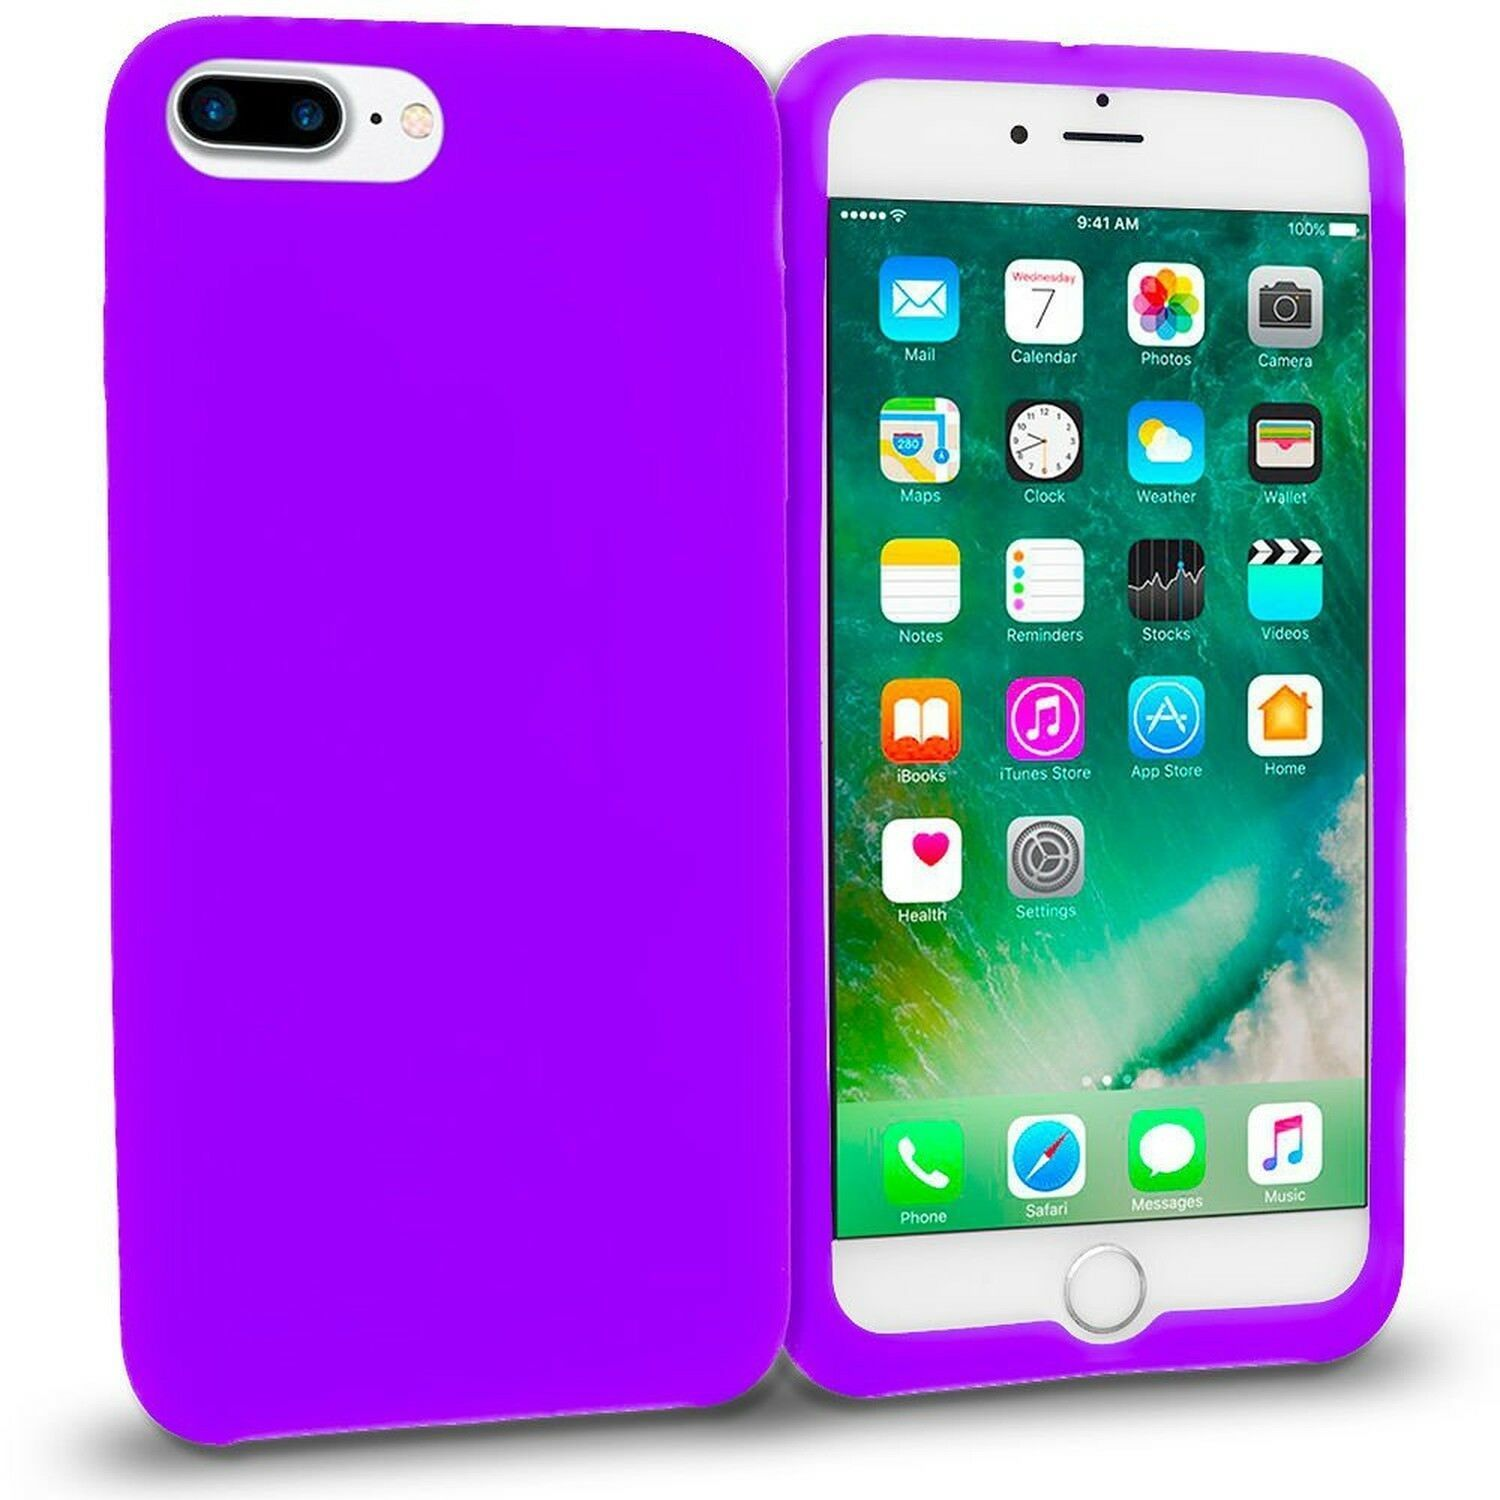 Purple Soft Silicone Rubber Case Flexible Skin Jelly Cover for iPhone 7 Plus image 3